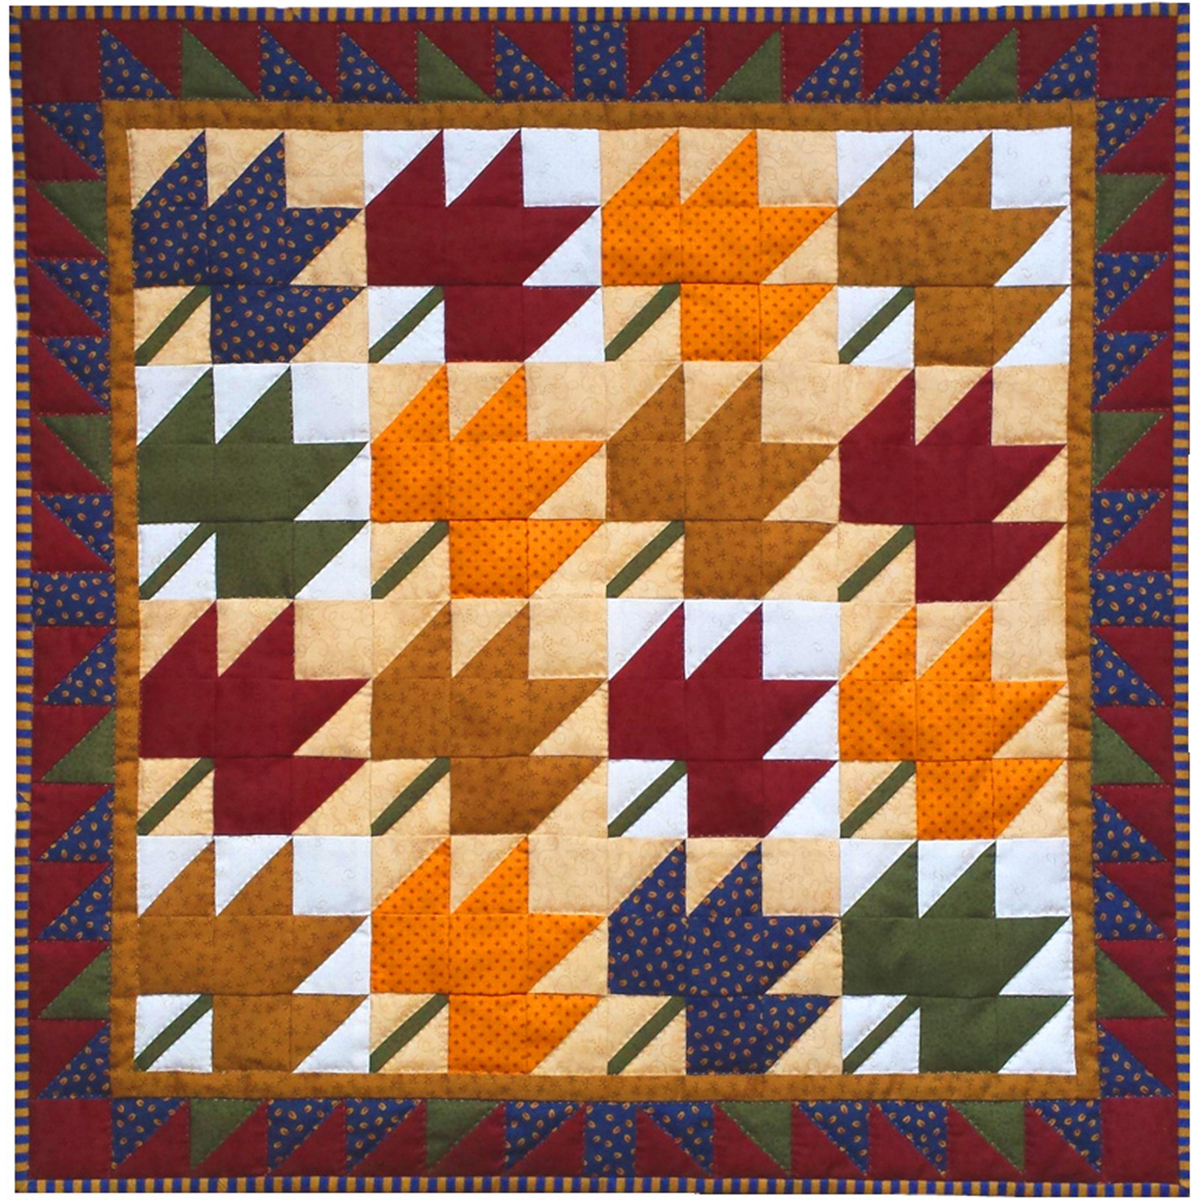 Rachel's Of Greenfield Wall Quilt Kit 22X22-Leaves